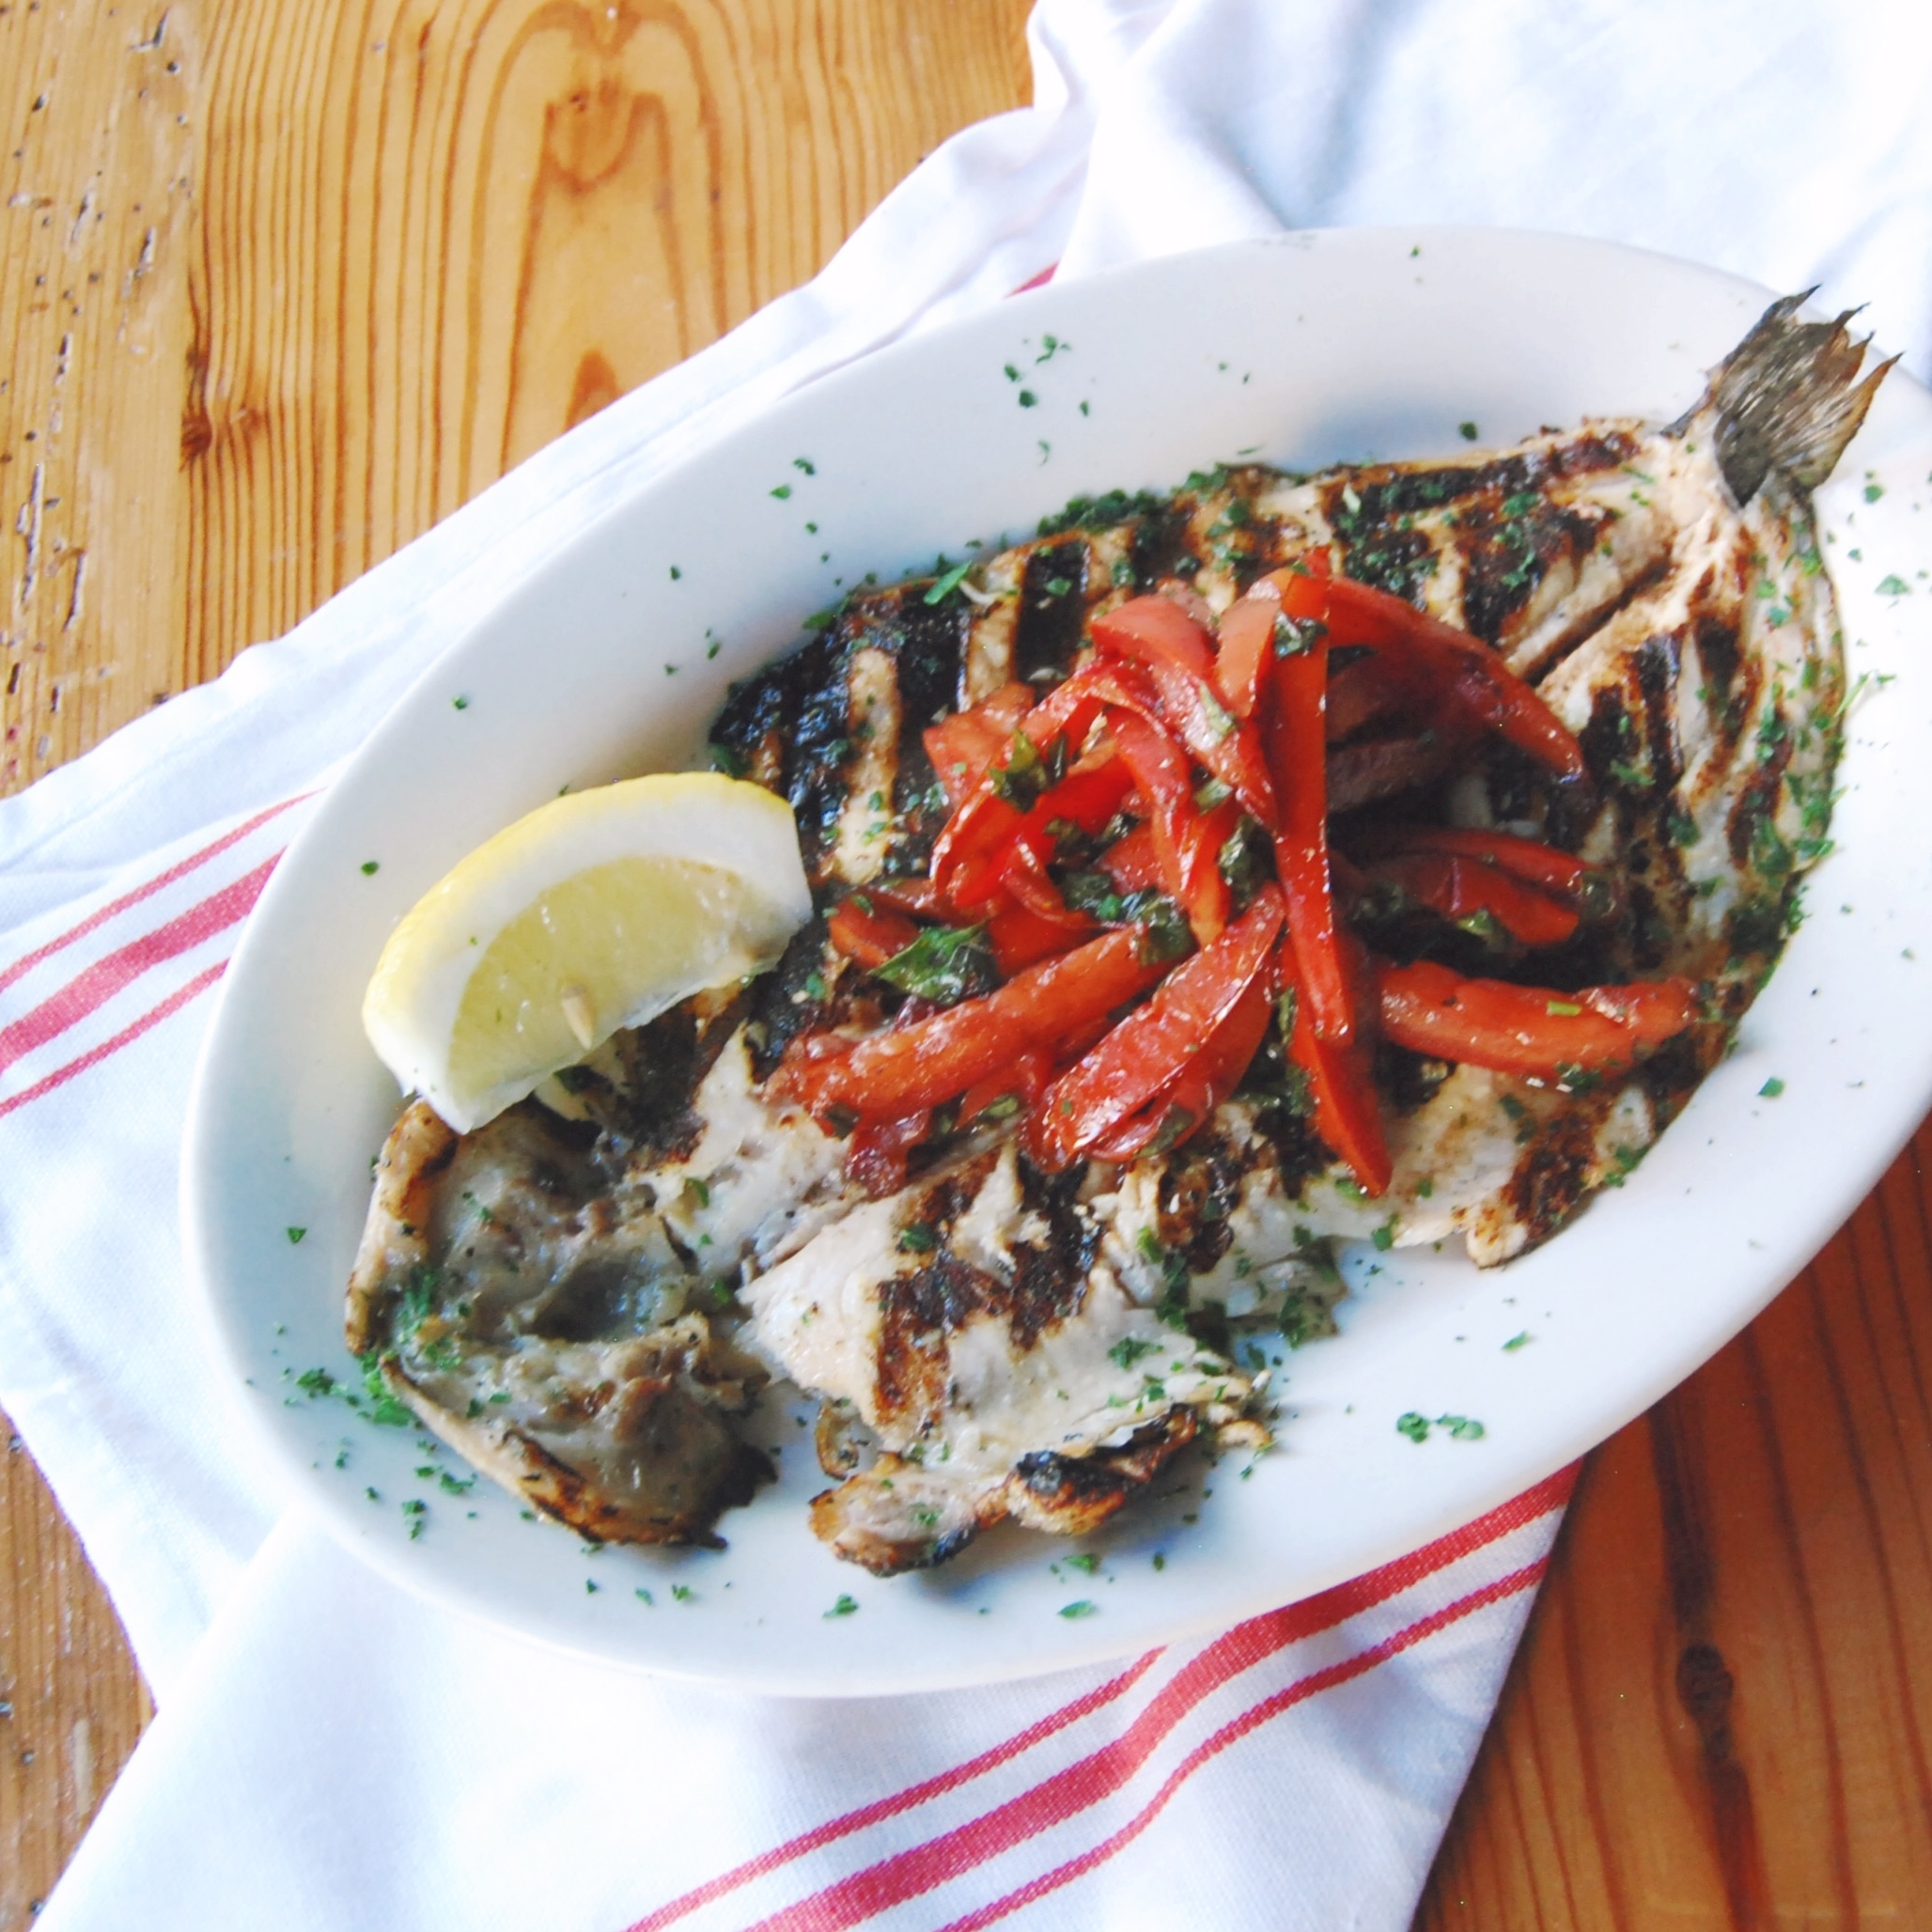 GRILLED RAINBOW TROUT   You won't find fish that's heavily breaded or smothered in sauce here. In a true testament to the quality of our seafood, we cook our fish on a hardwood grill to bring out their natural flavors instead of covering them up.